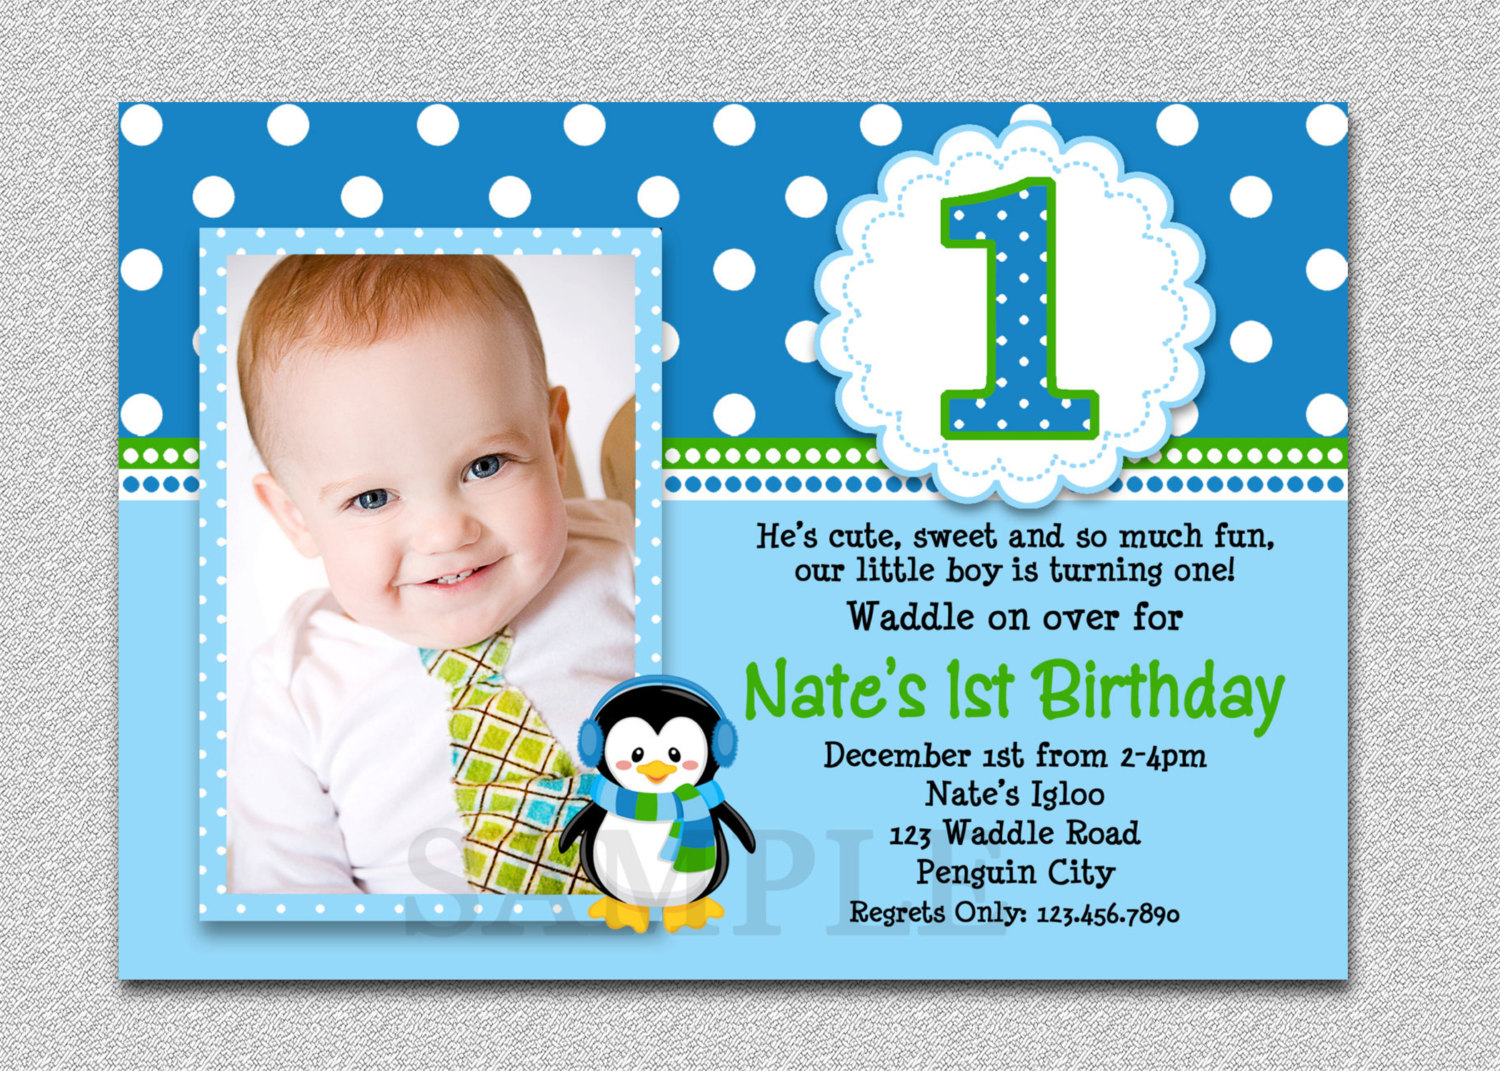 baby boy birthday invitation template ; New-1St-Birthday-Invitations-Boy-Which-Can-Be-Used-As-Free-Printable-Birthday-Party-Invitations